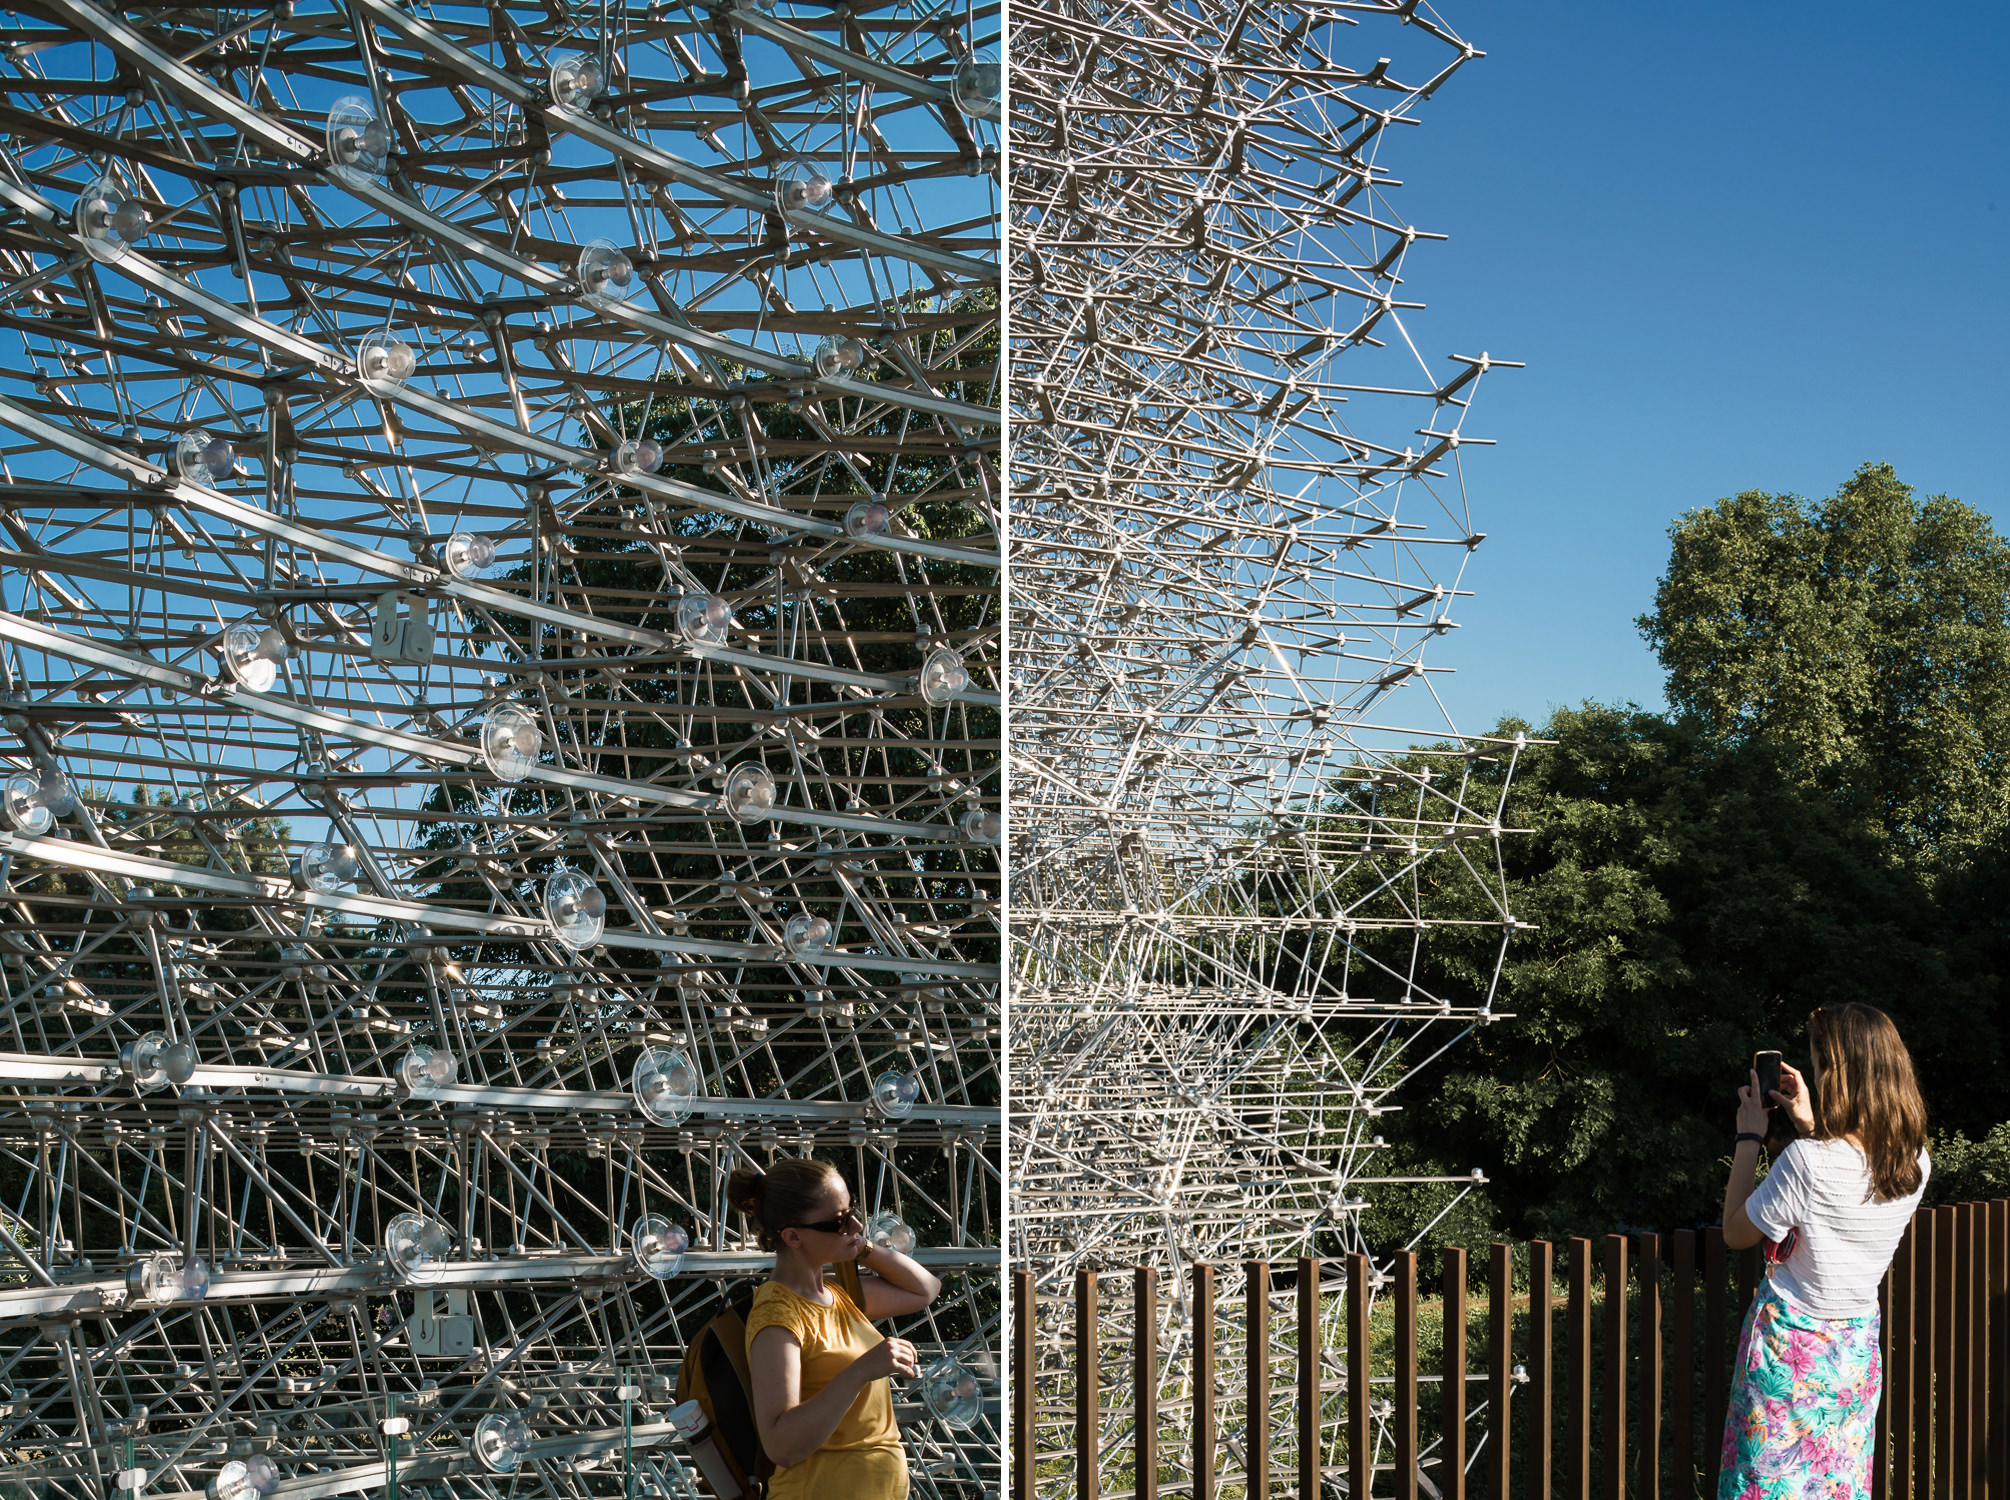 Onlookers at The Hive, Kew Gardens. Mark Hadden Architecture Photographer